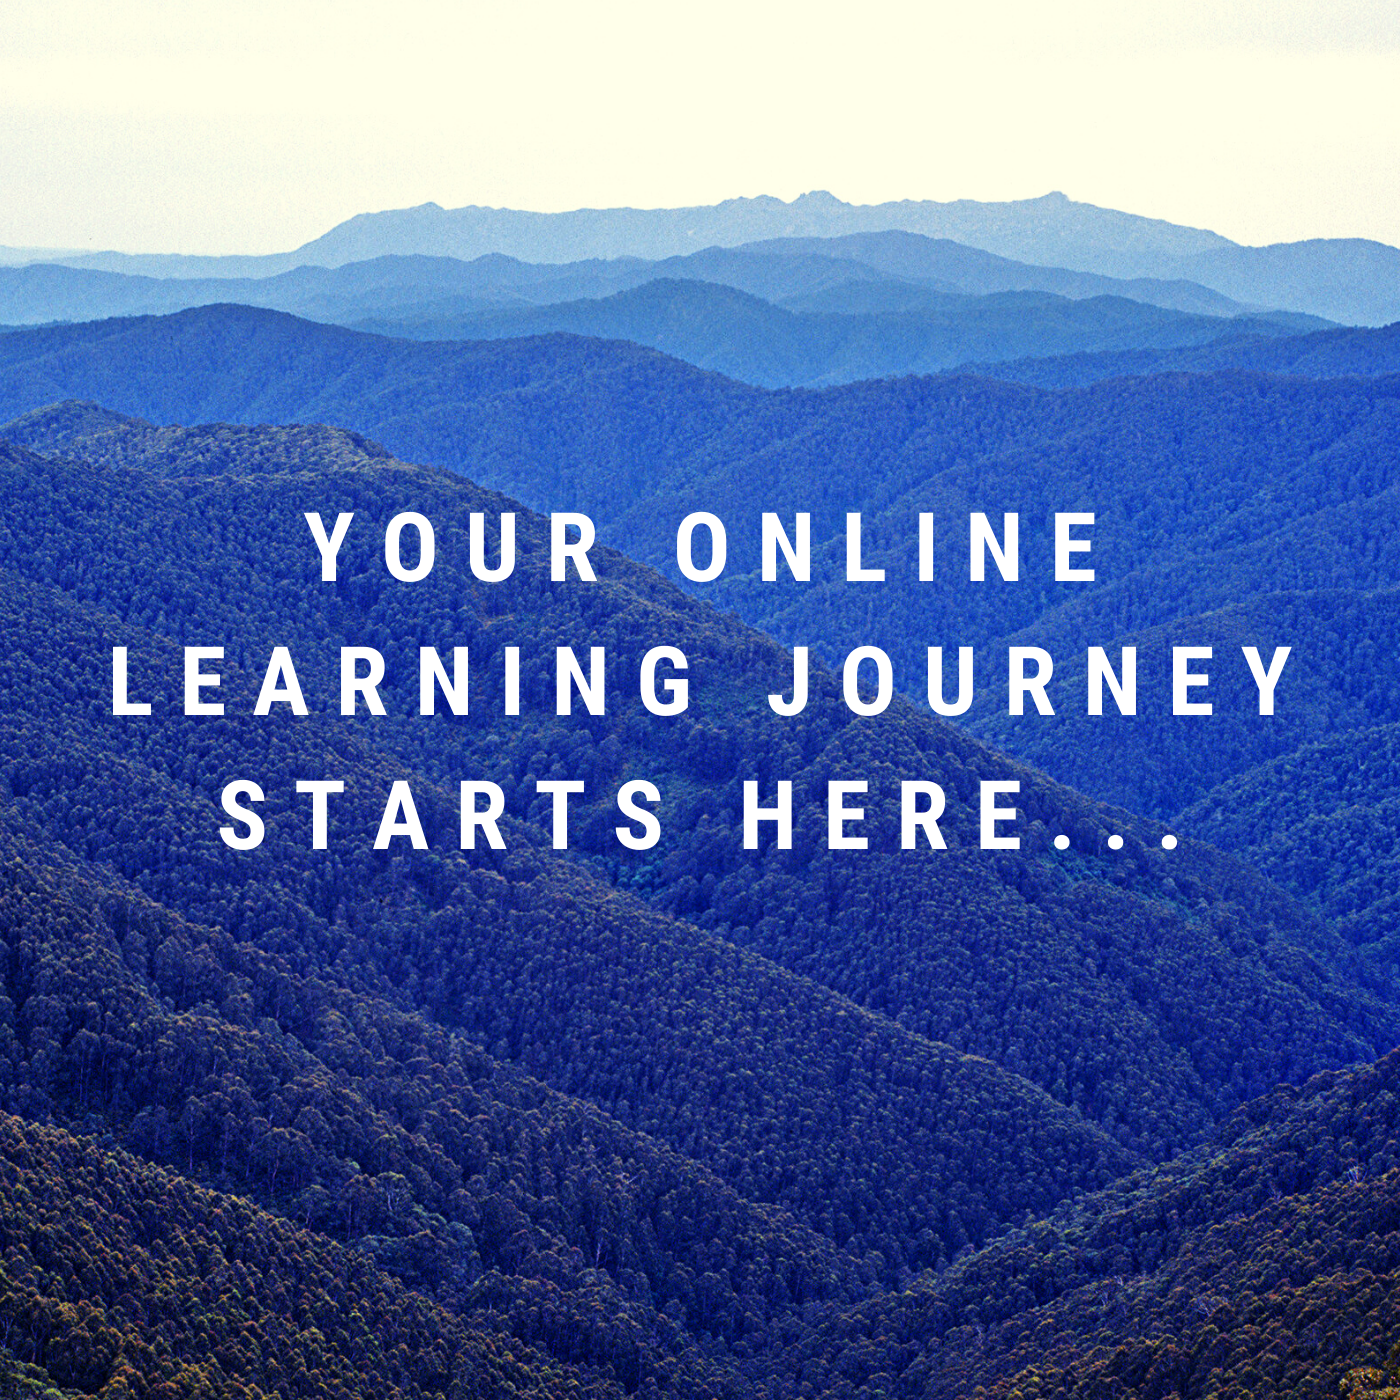 Your online learning journey starts here